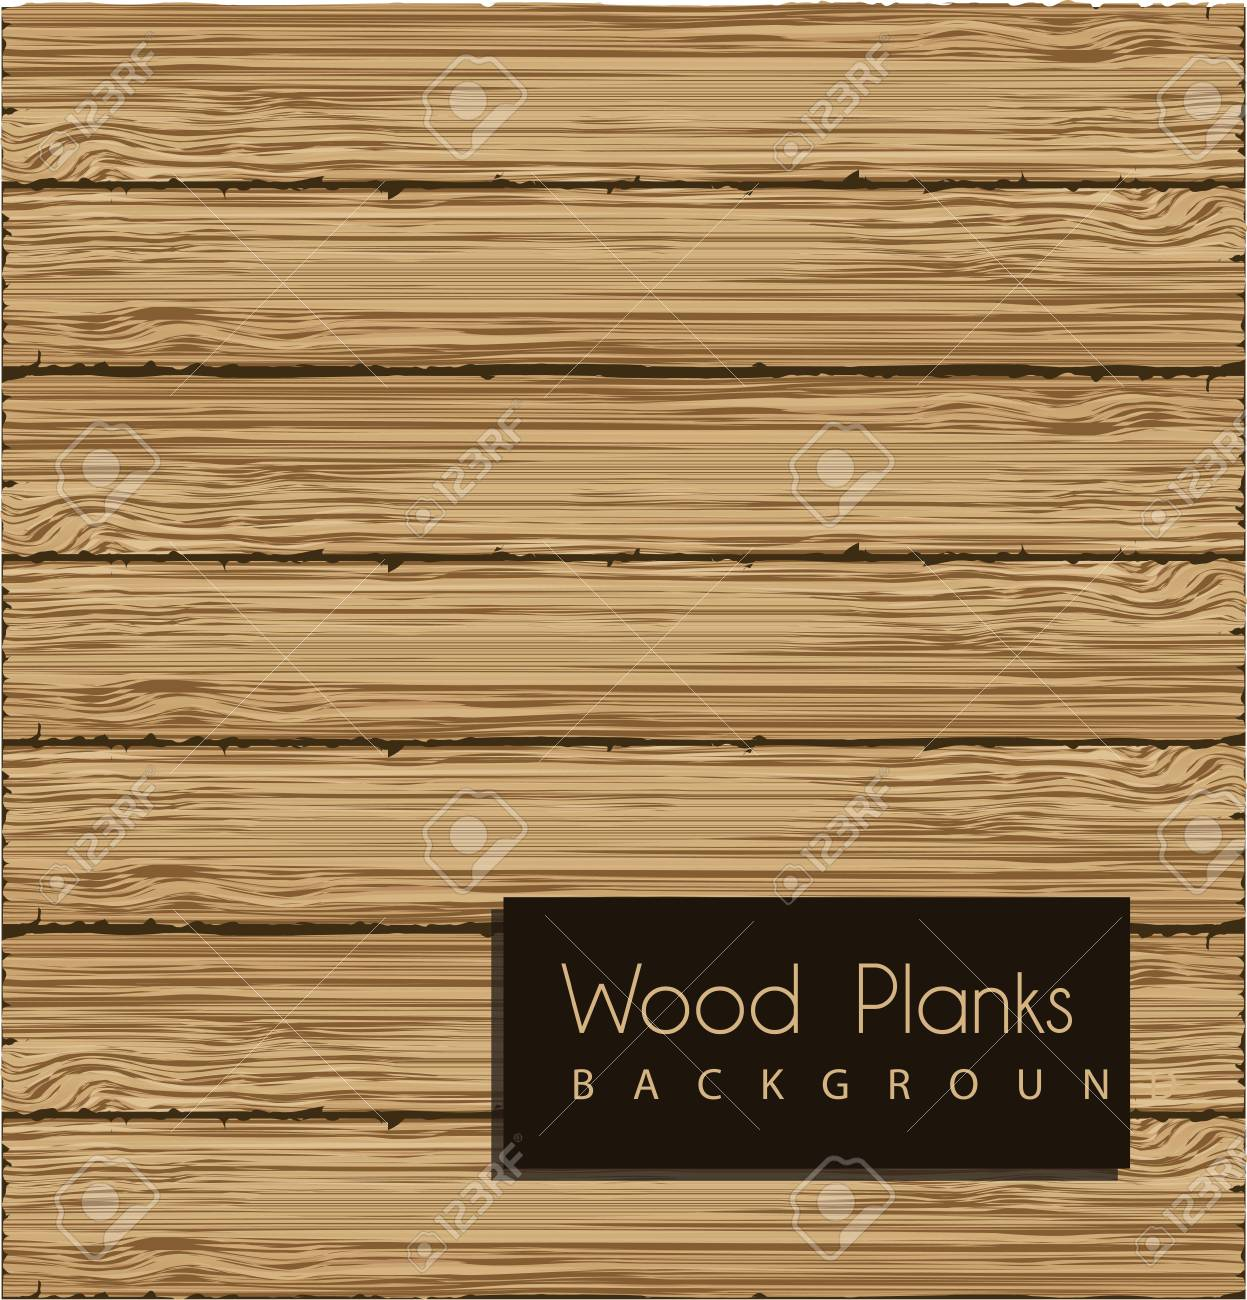 illustration of wooden pattern in different shades, vector illustration Stock Vector - 14473395